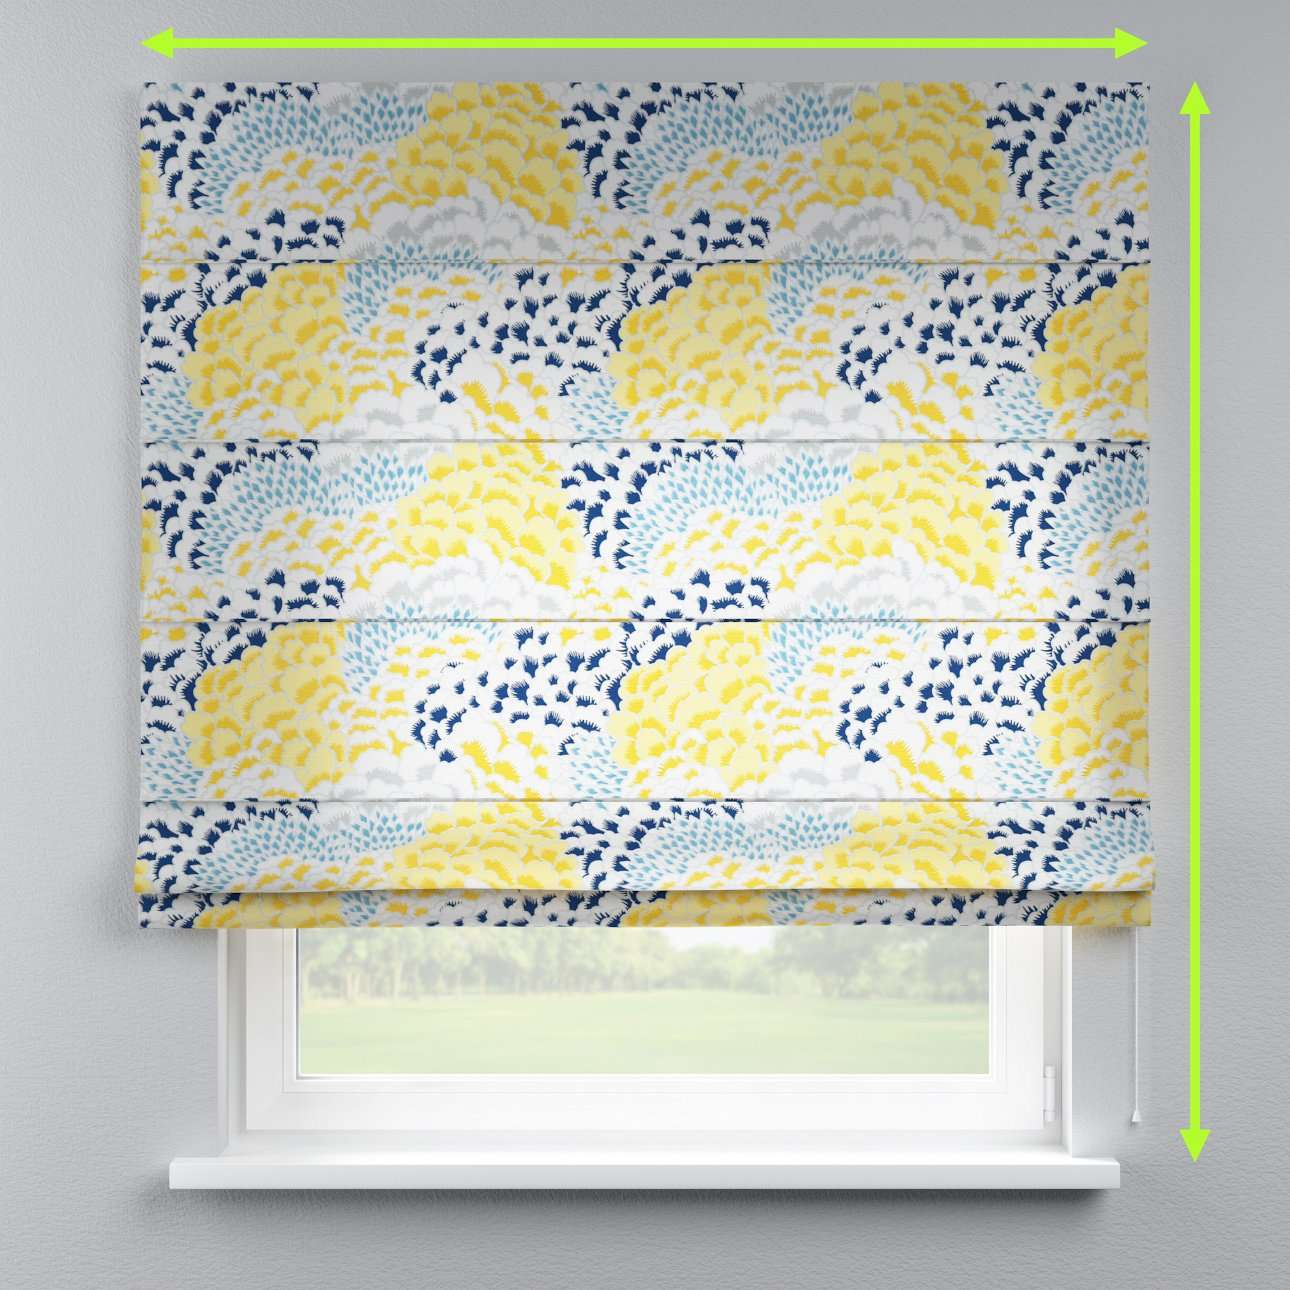 Capri roman blind in collection Brooklyn, fabric: 137-86